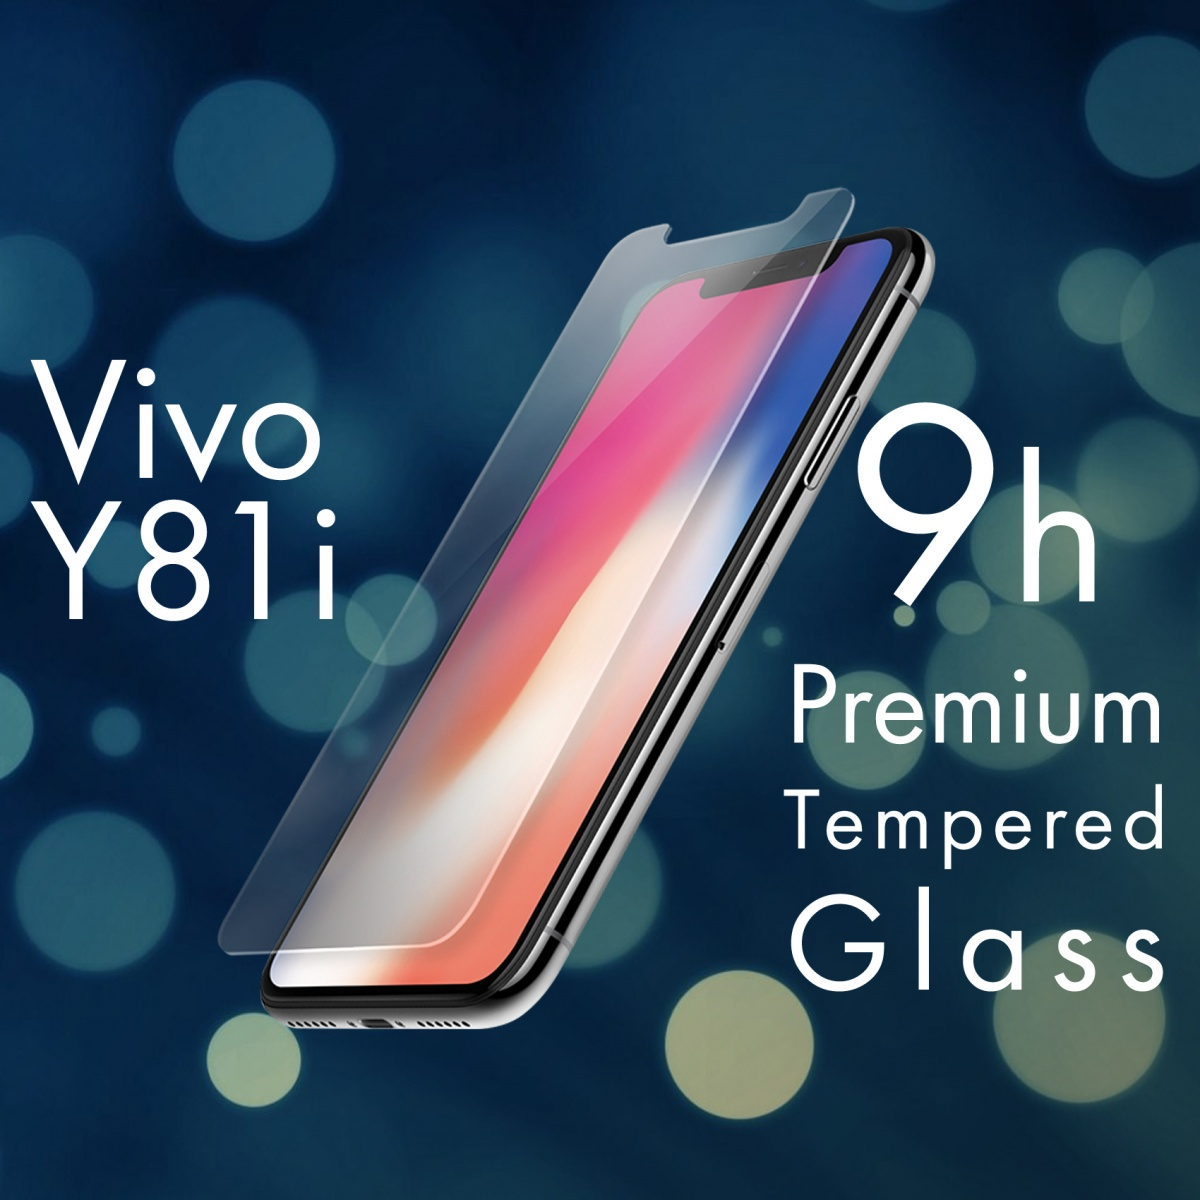 FOR SKU Vivo Y81i Full Screen Clear Tempered Glass